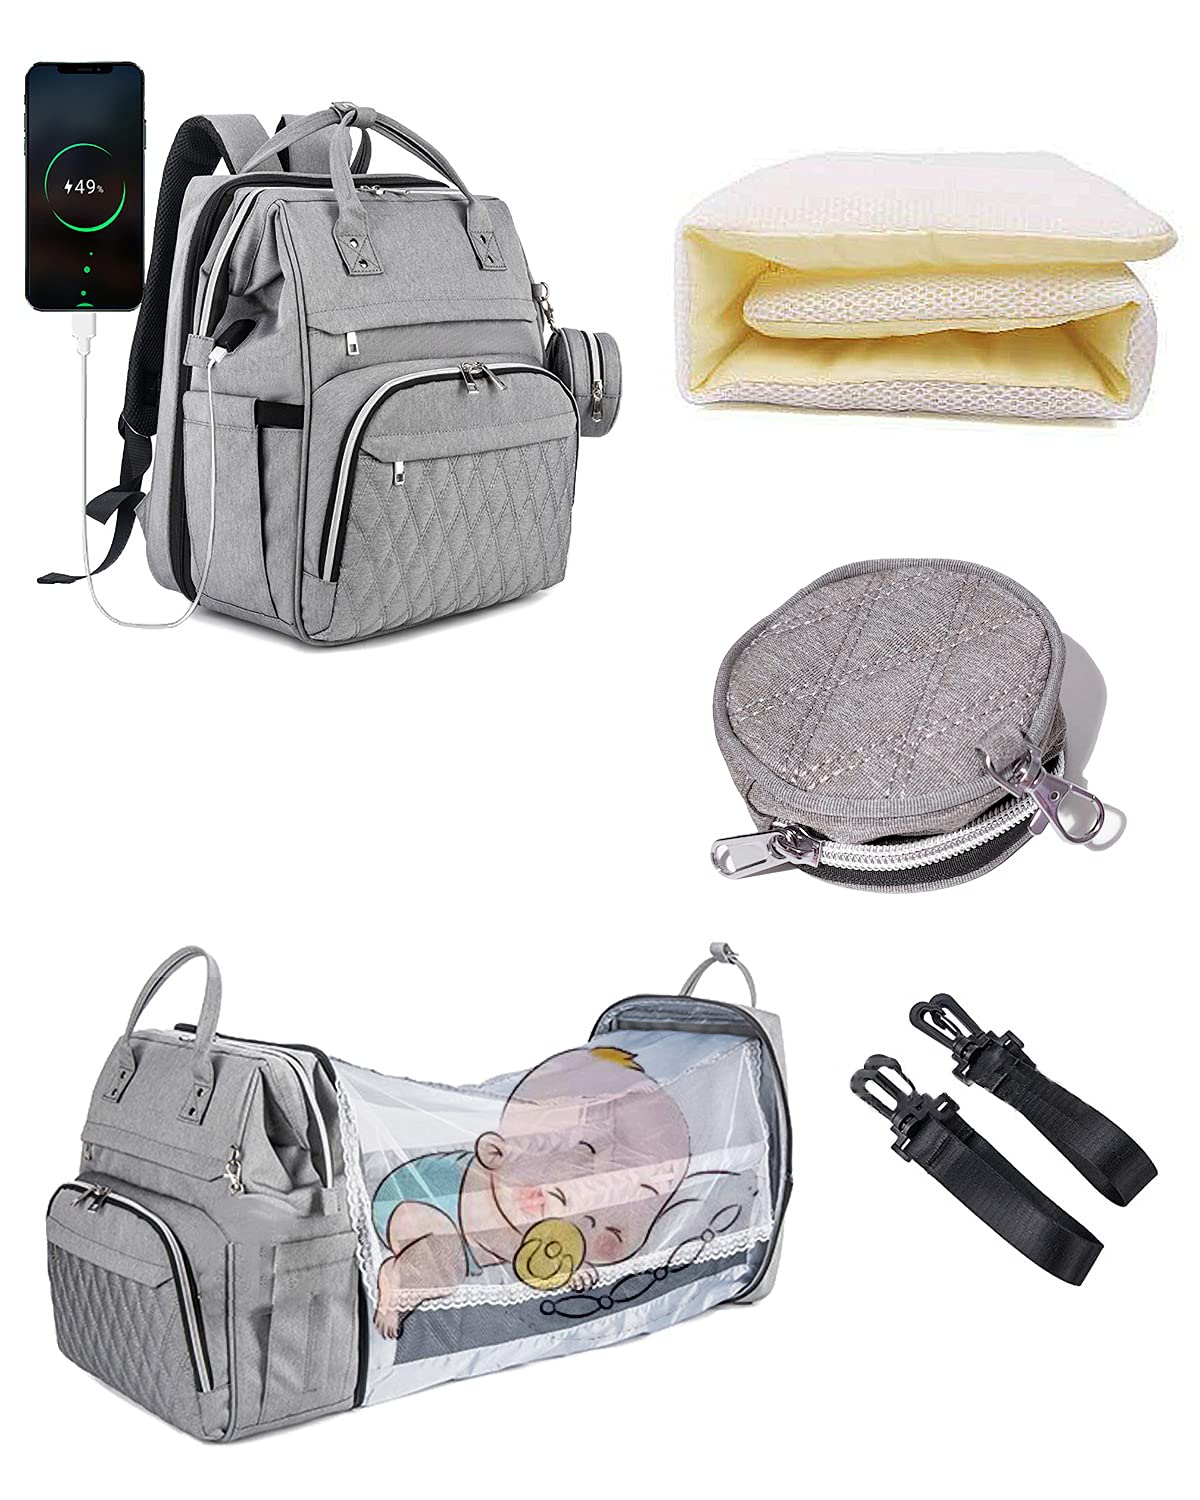 4 in1 Diaper Bag Backpack with Folding Crib,Diapers Changing Station with Sunshade Mosquito Net,Portable Mummy Bag Large Capacity Diaper Bag Foldable Baby Bed, Multifunctional Baby Organizer